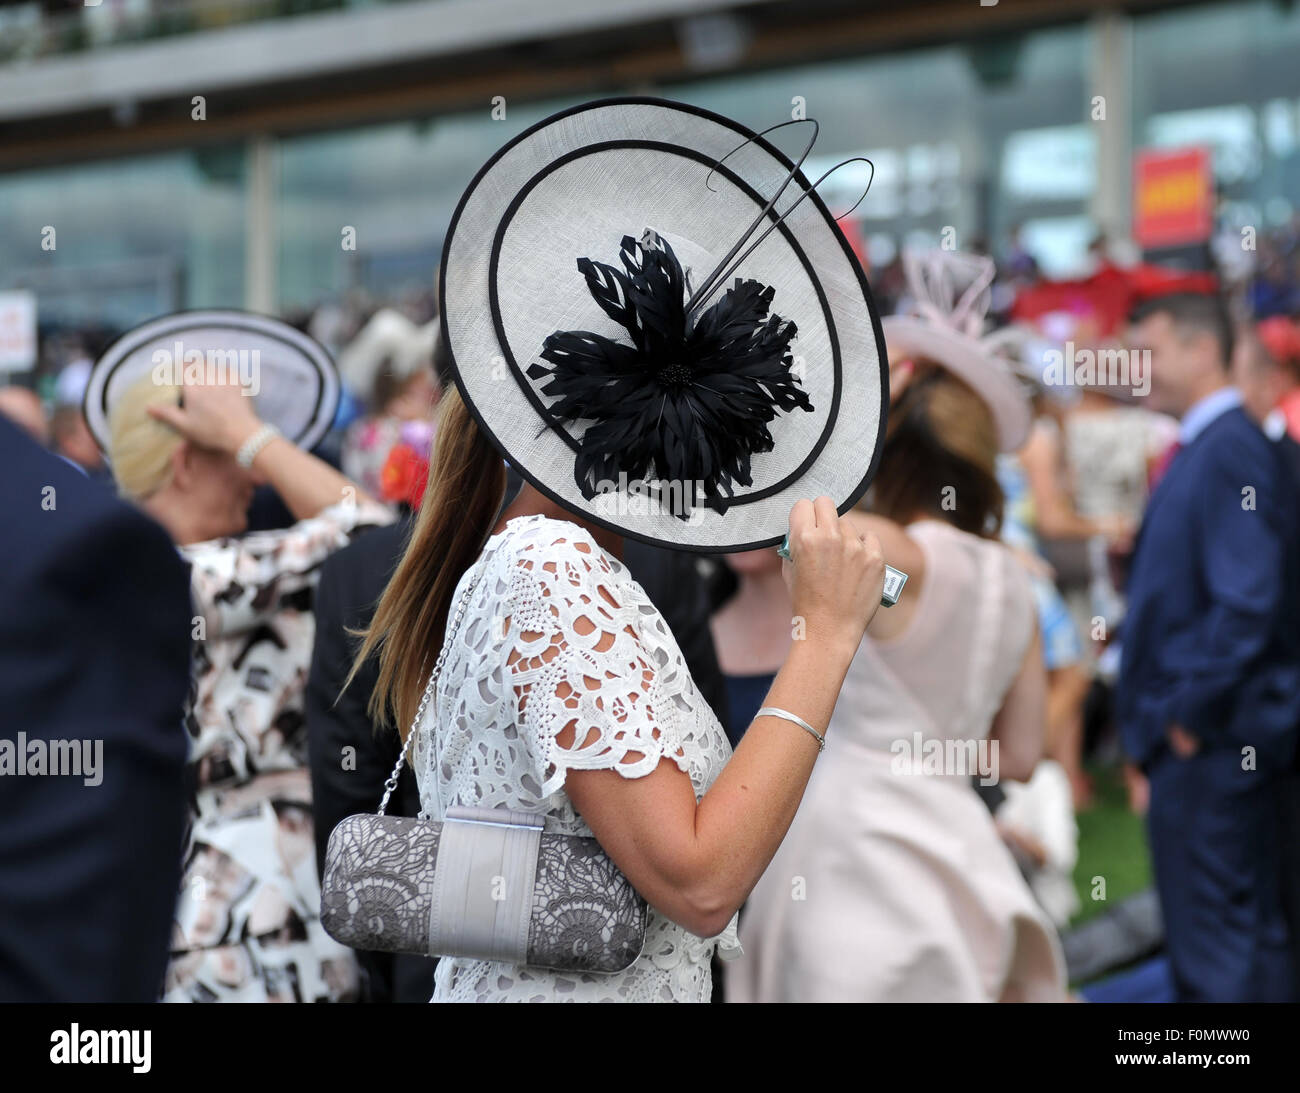 Royal Ascot 2015 tenue à Ascot Racecourse - Jour 2 Où : Ascot, Royaume-Uni Quand : 16 Juin 2015 Photo Stock